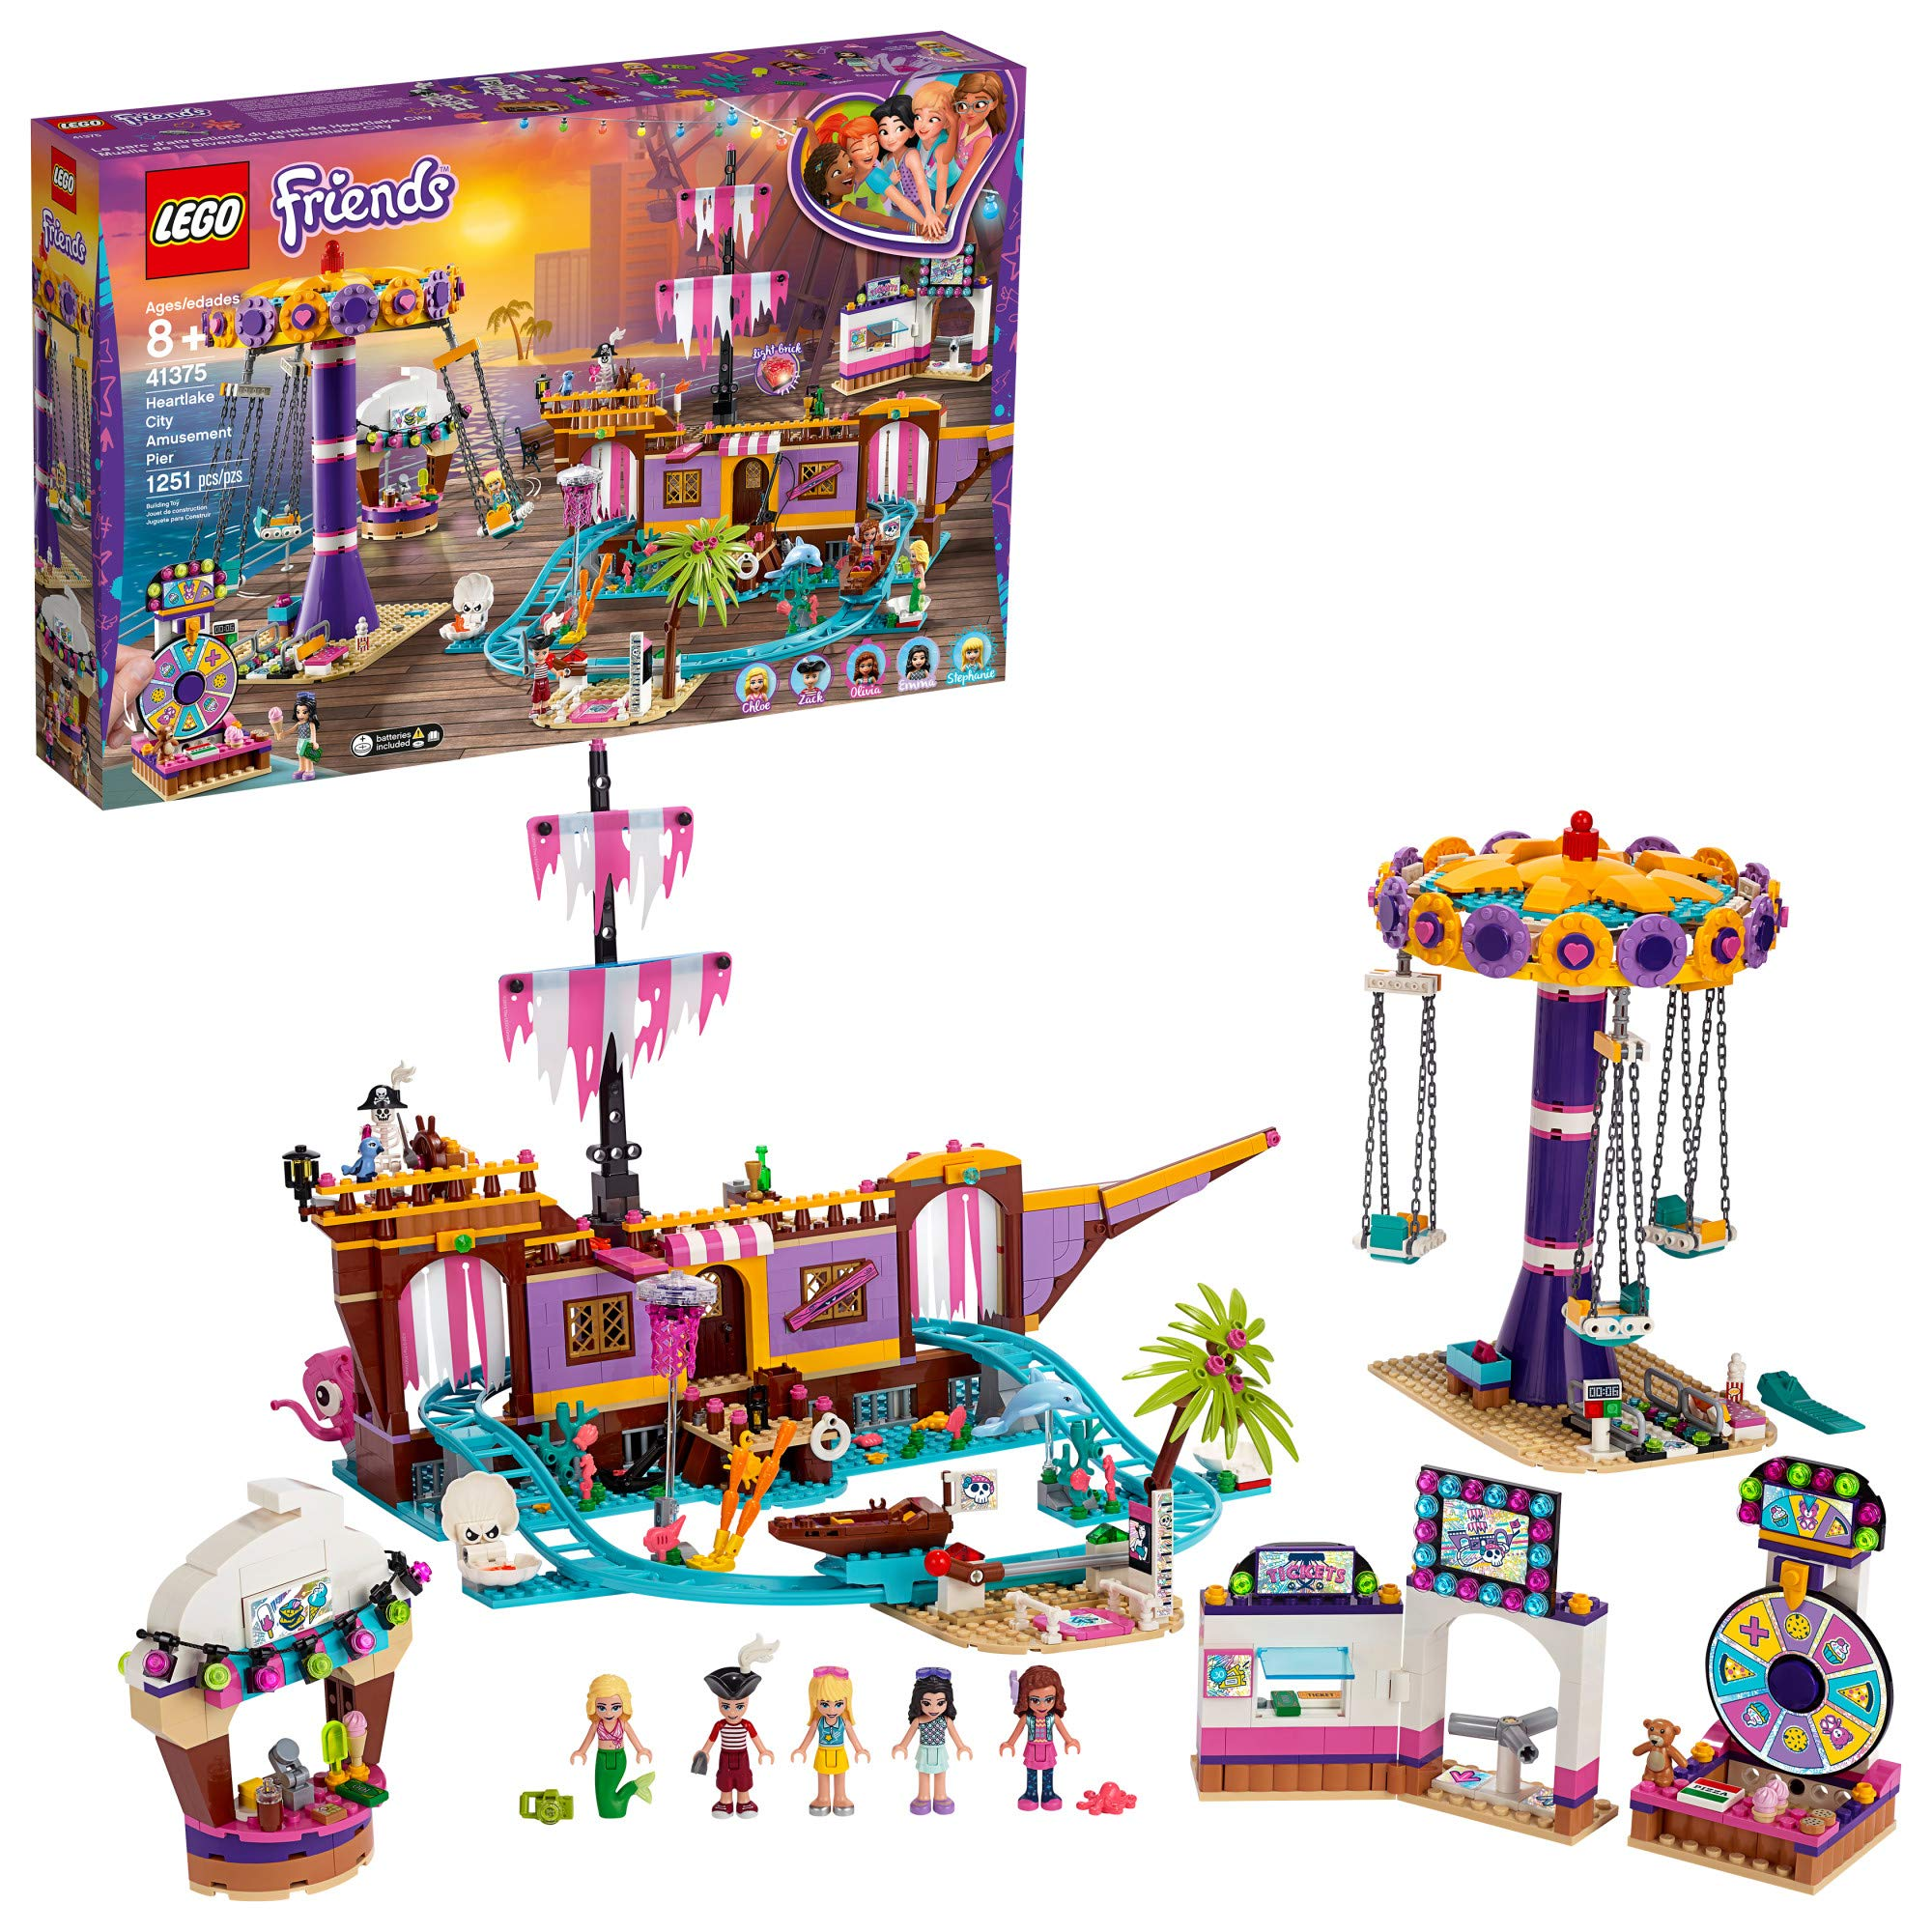 LEGO Friends Heartlake City Amusement Pier 41375 Toy Rollercoaster Building Kit with Mini Dolls and Toy Dolphin, Build and Play Set includes Toy Carousel, Ticket Kiosk and more, New 2019 (1251 Pieces) by LEGO